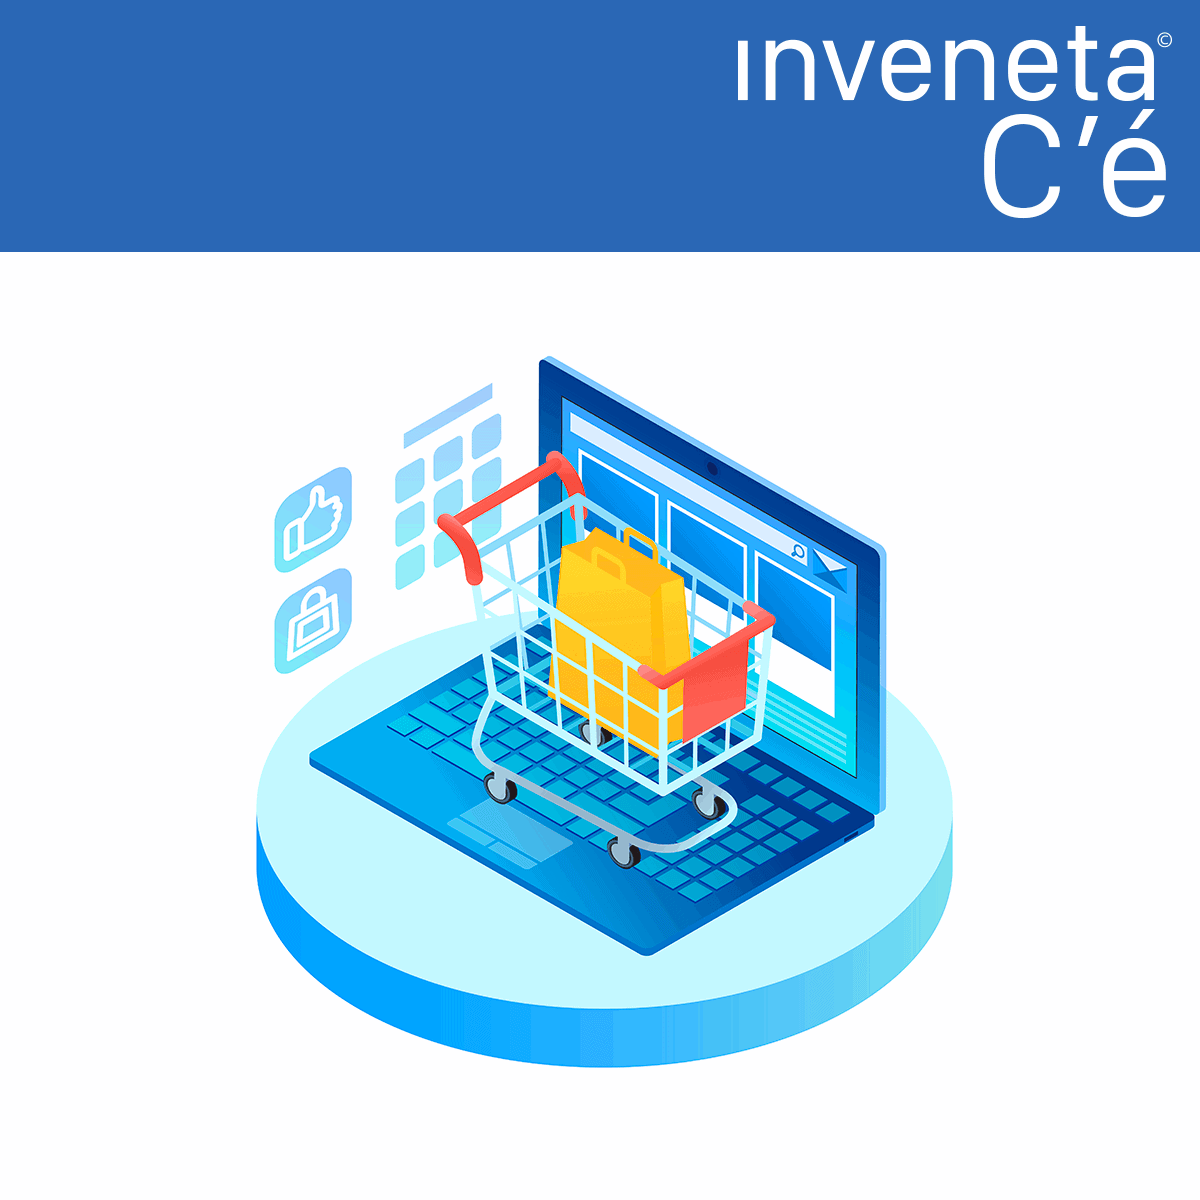 Immagine e-commerce Inveneta